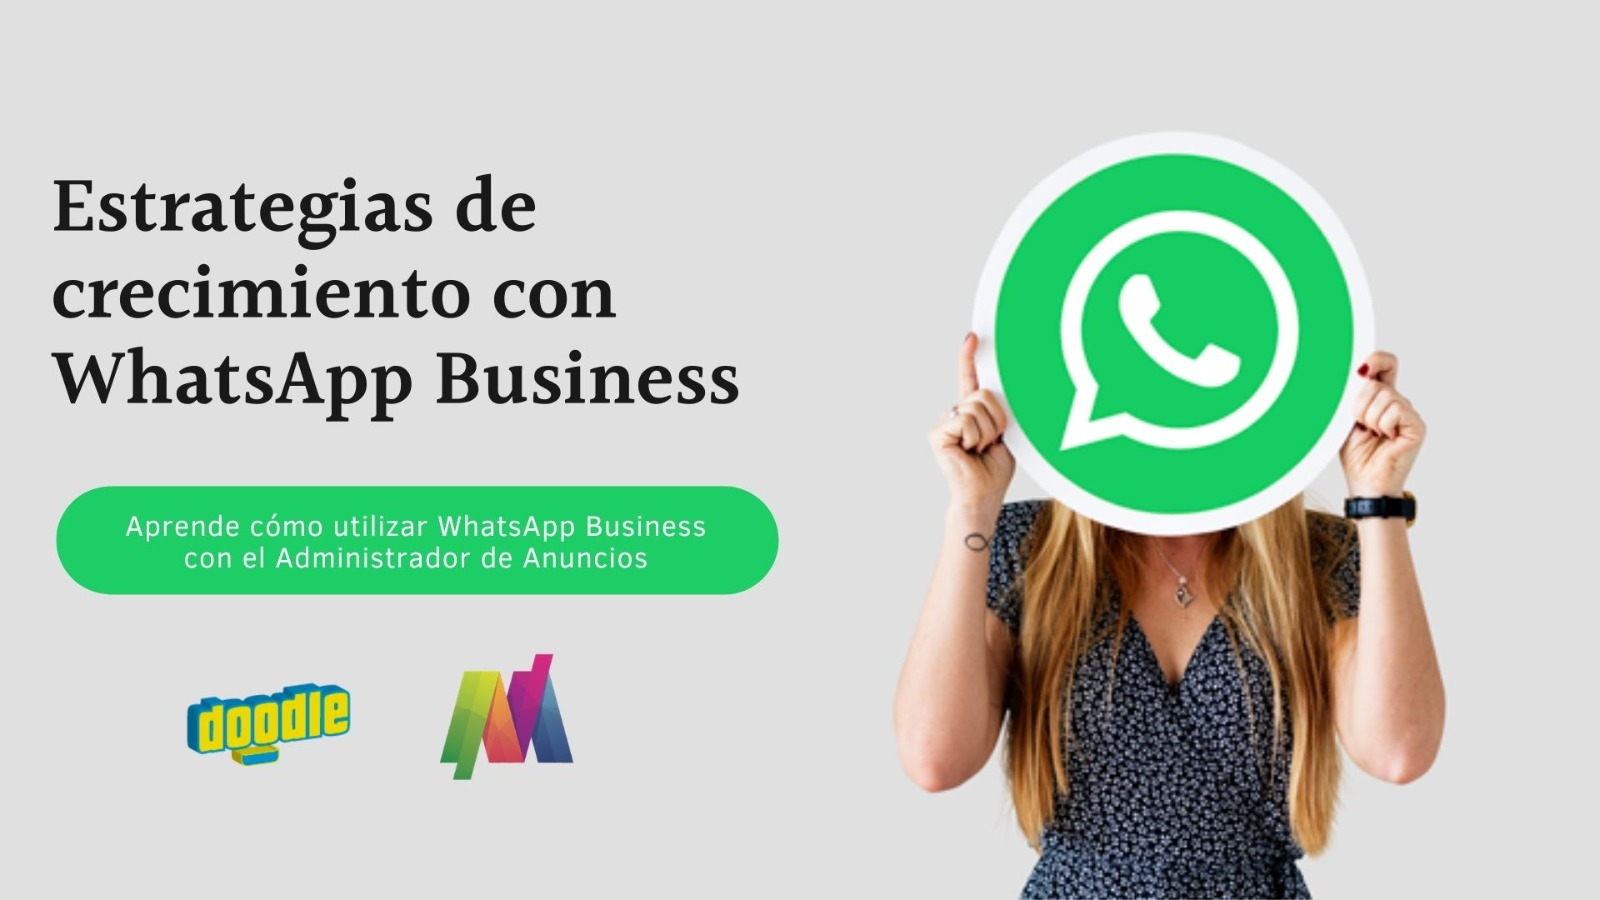 WhatsApp_webinar-2020-10-22